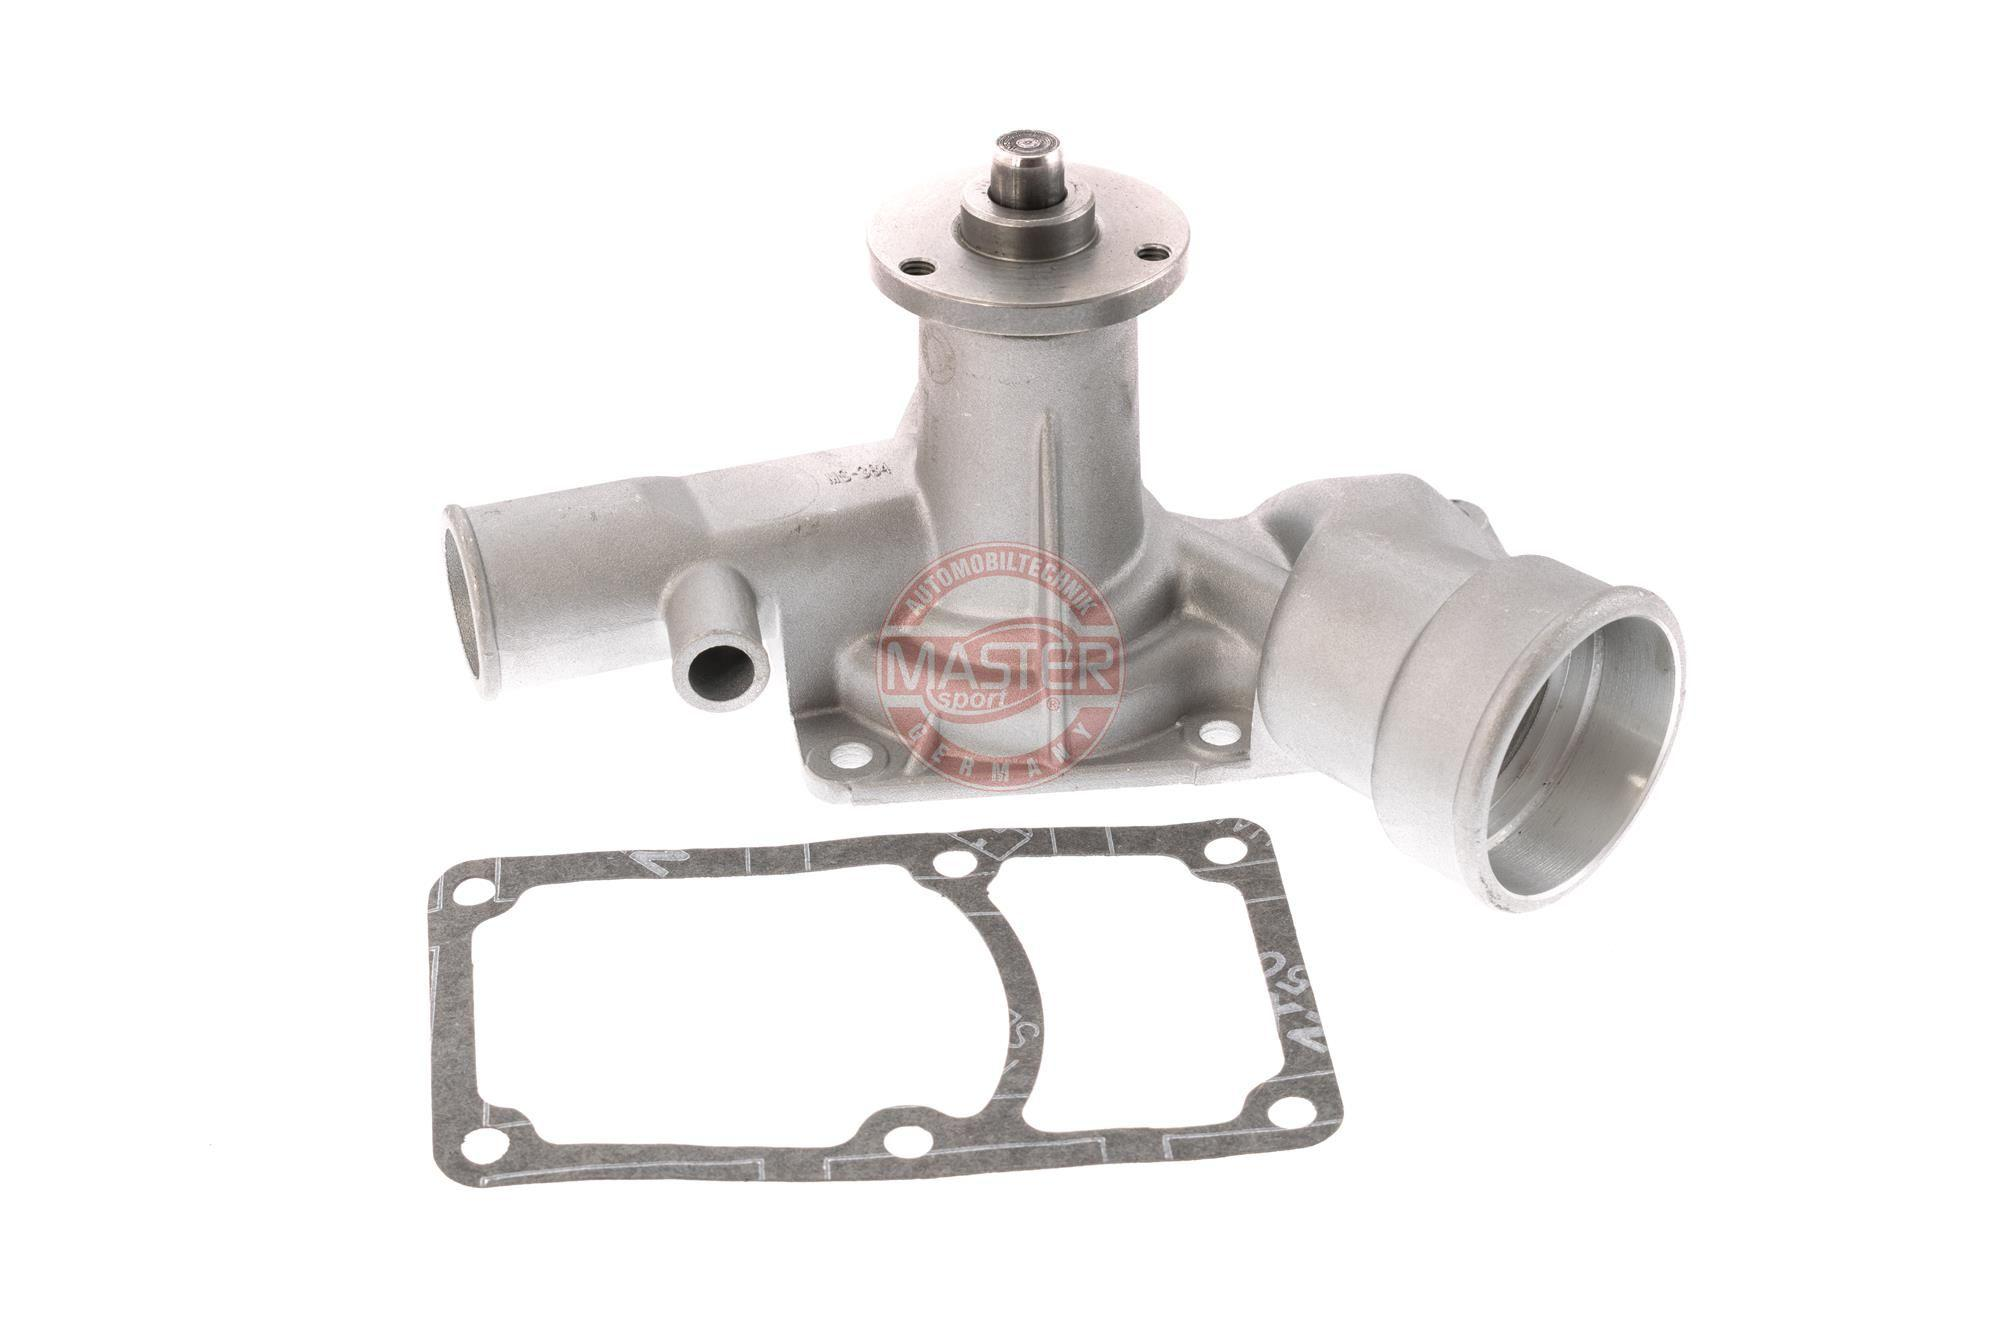 master-sport Waterpomp OPEL,VAUXHALL 384-WP-PCS-MS 1334027,1334071,90091035  90409912,1334027,1334071,90091035,90409912,90091035,90409912